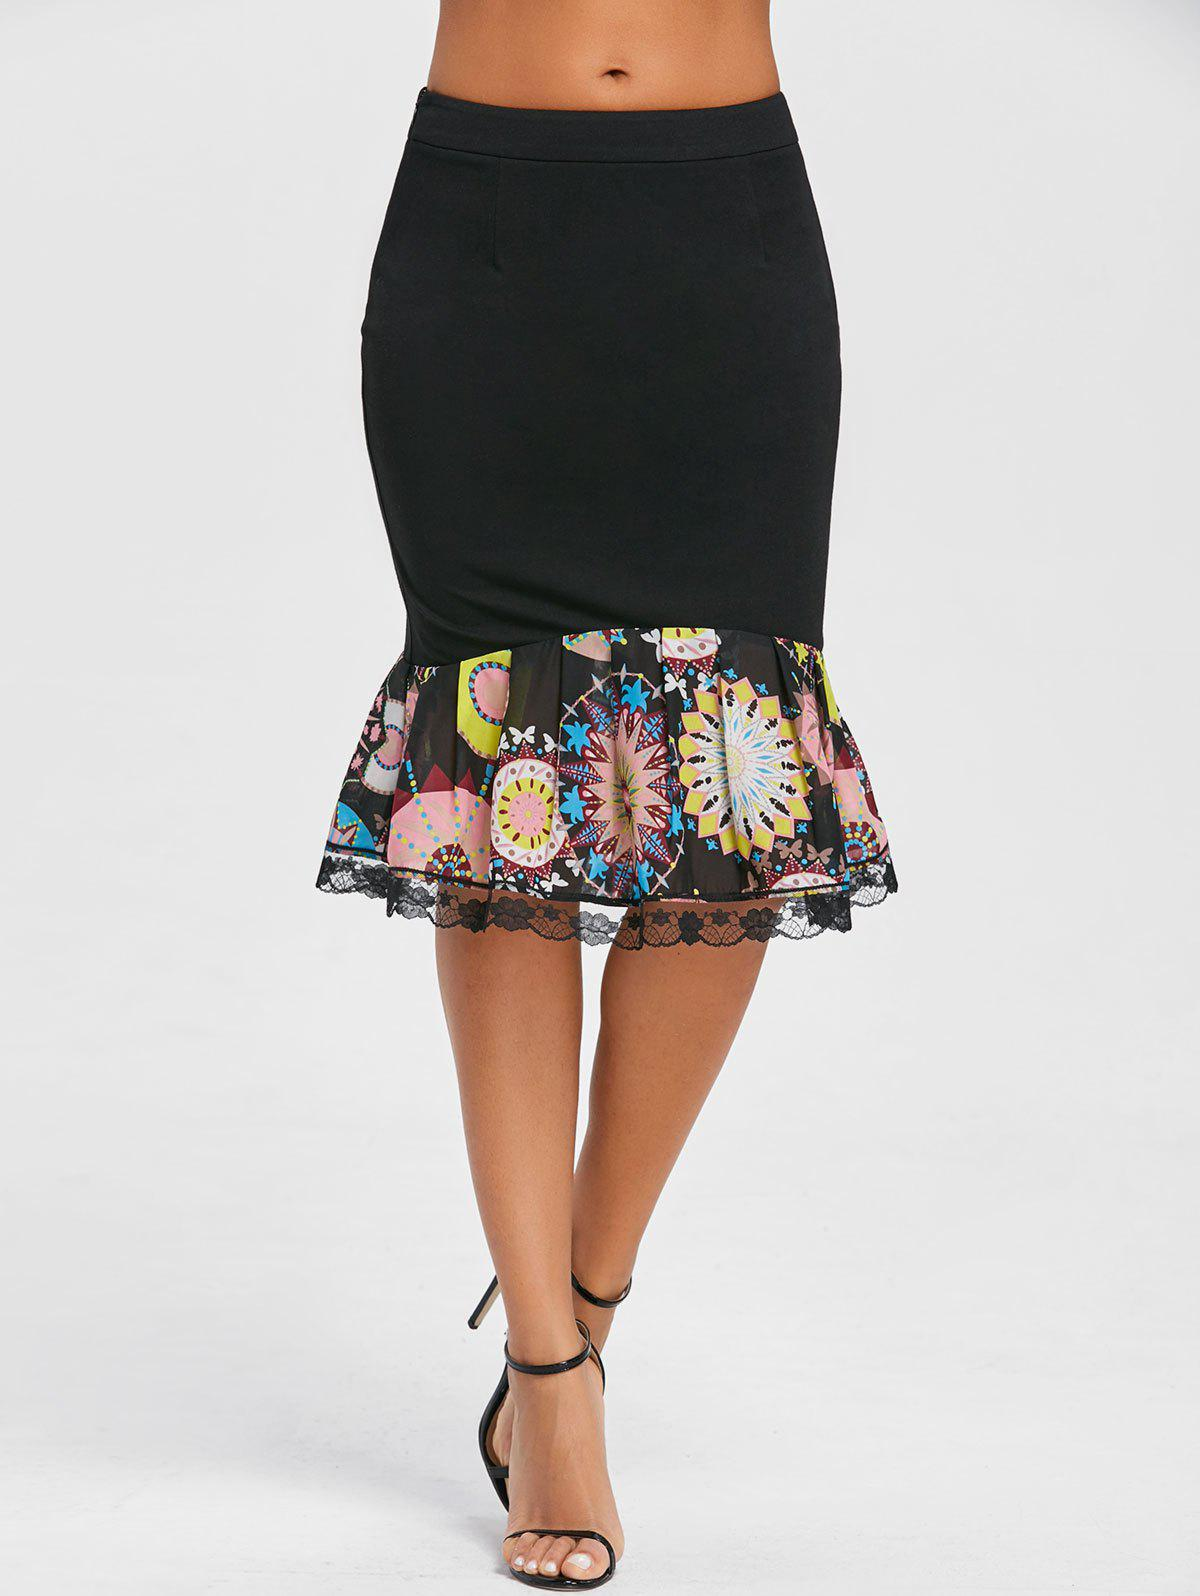 Print Trimmed Bodycon Mermaid Skirt - BLACK M